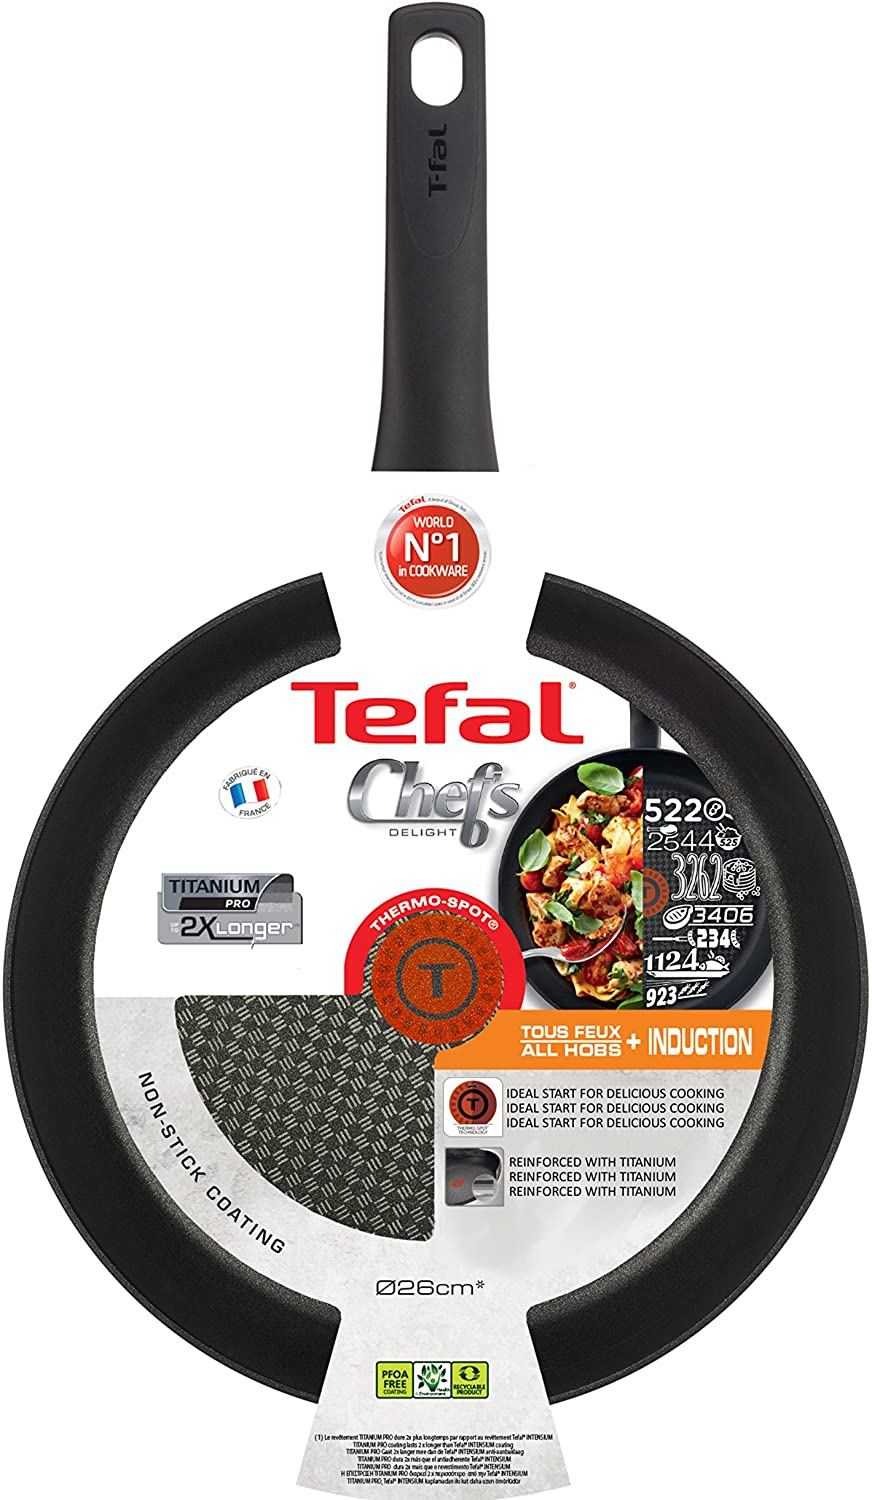 TEFAL CHEF DELIGHT 26CM FRYPAN WITH THERMOSPOT